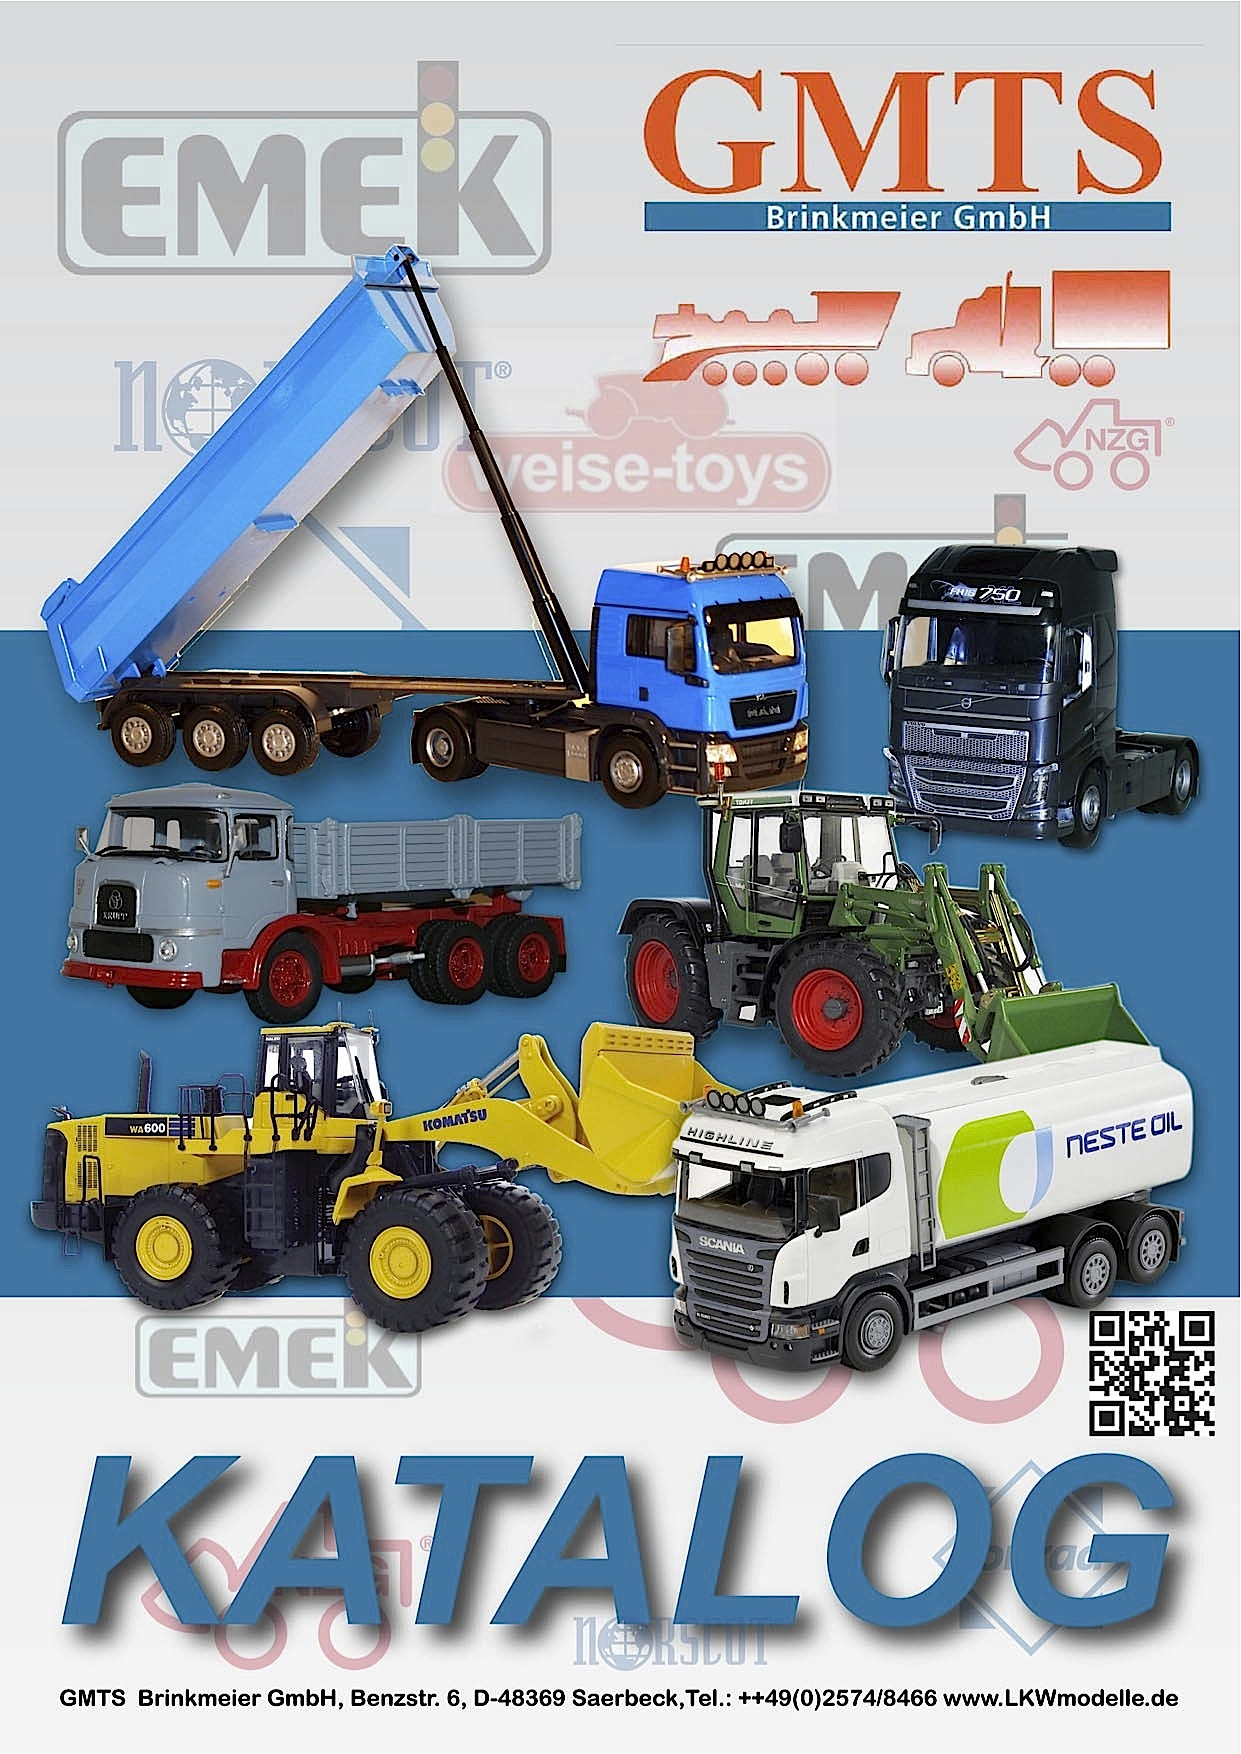 GMTS Katalog (GMTS Catalogue) 2013